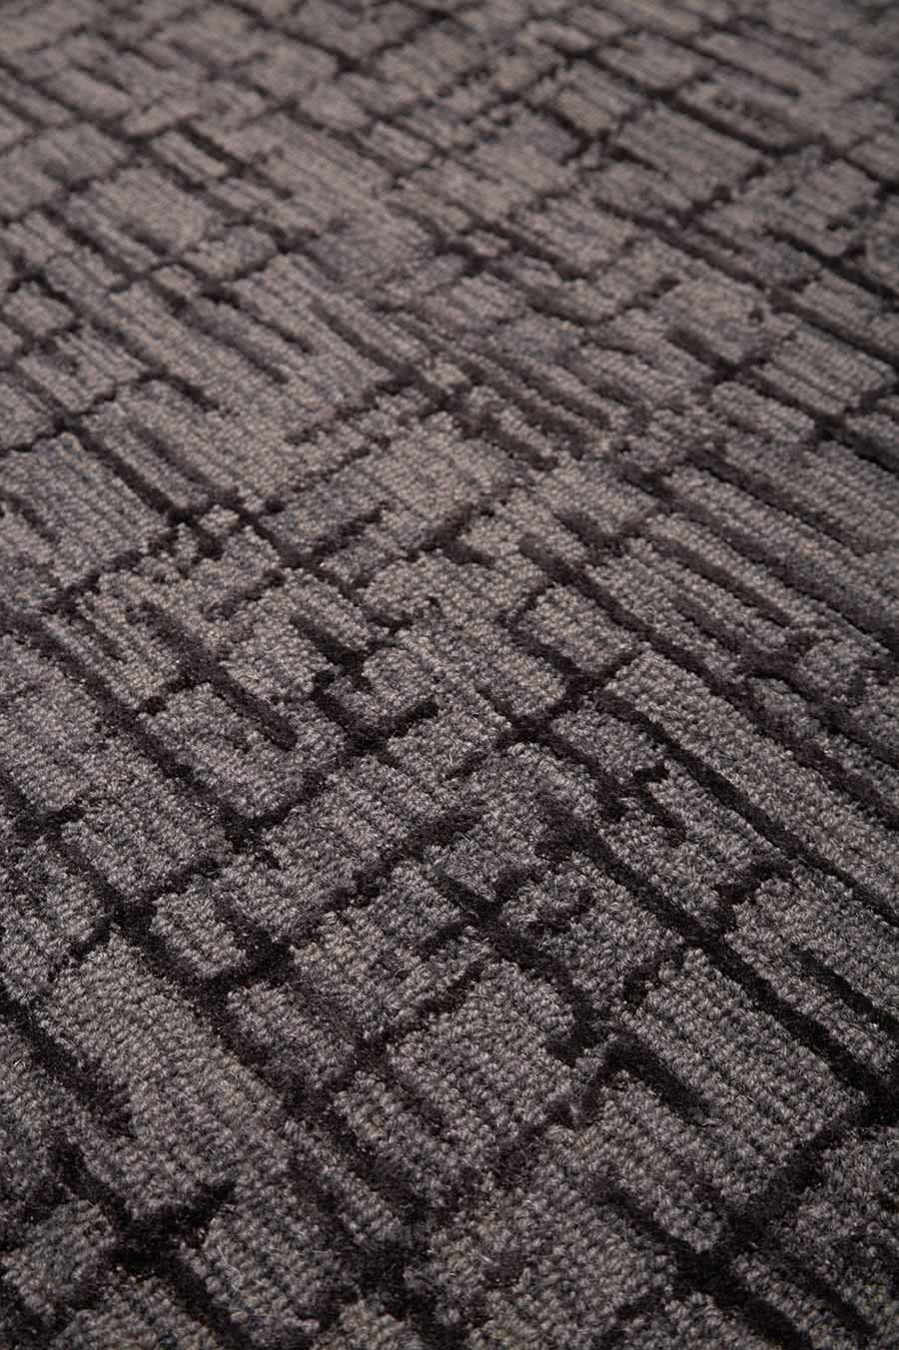 Close up view of textured Krypton rug in charcoal grey colour